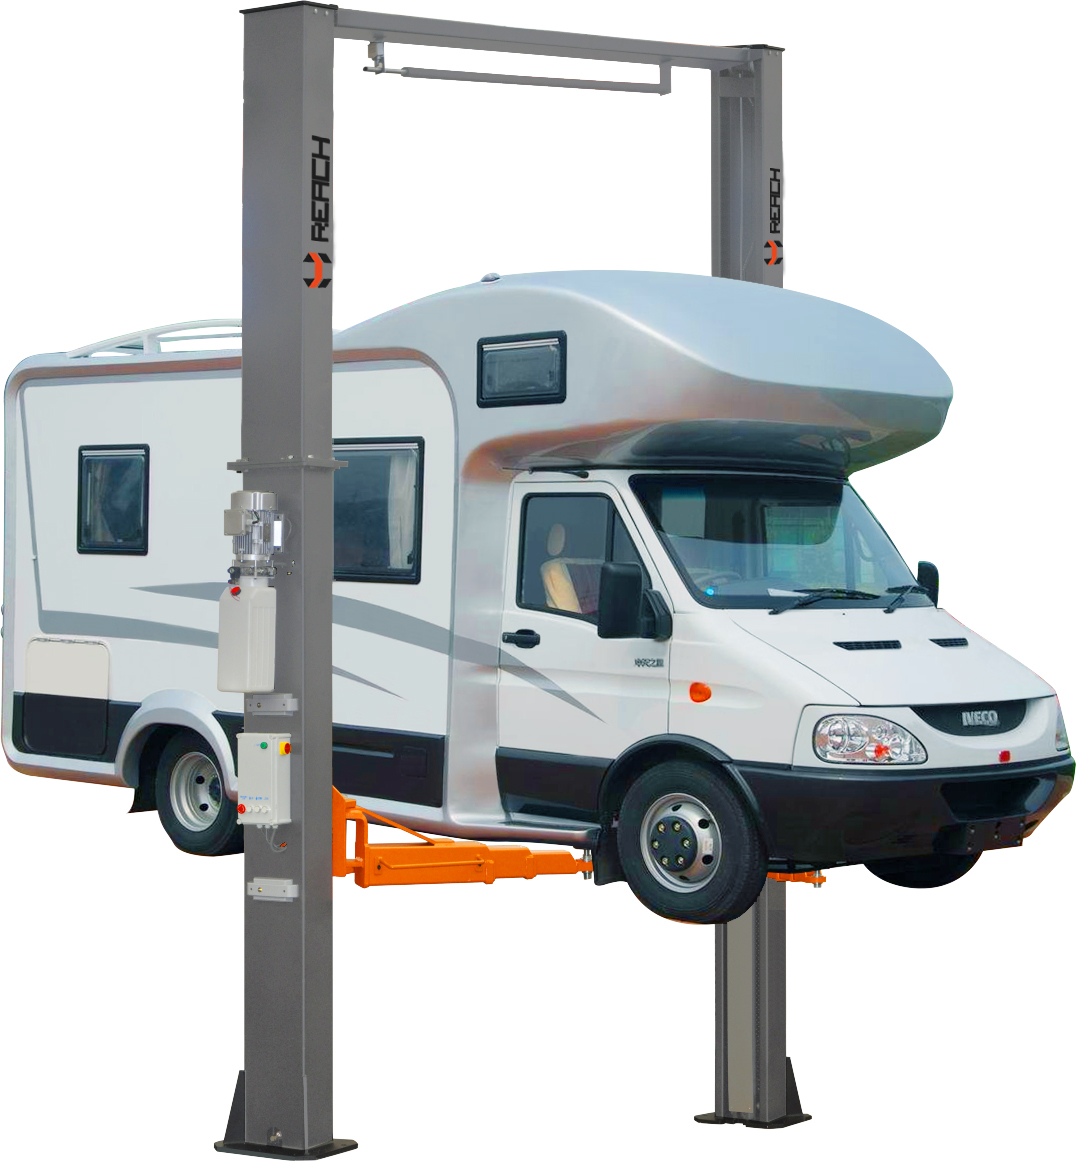 RH-C6000ES 6 Tons two post truck lift for service station Featured Image